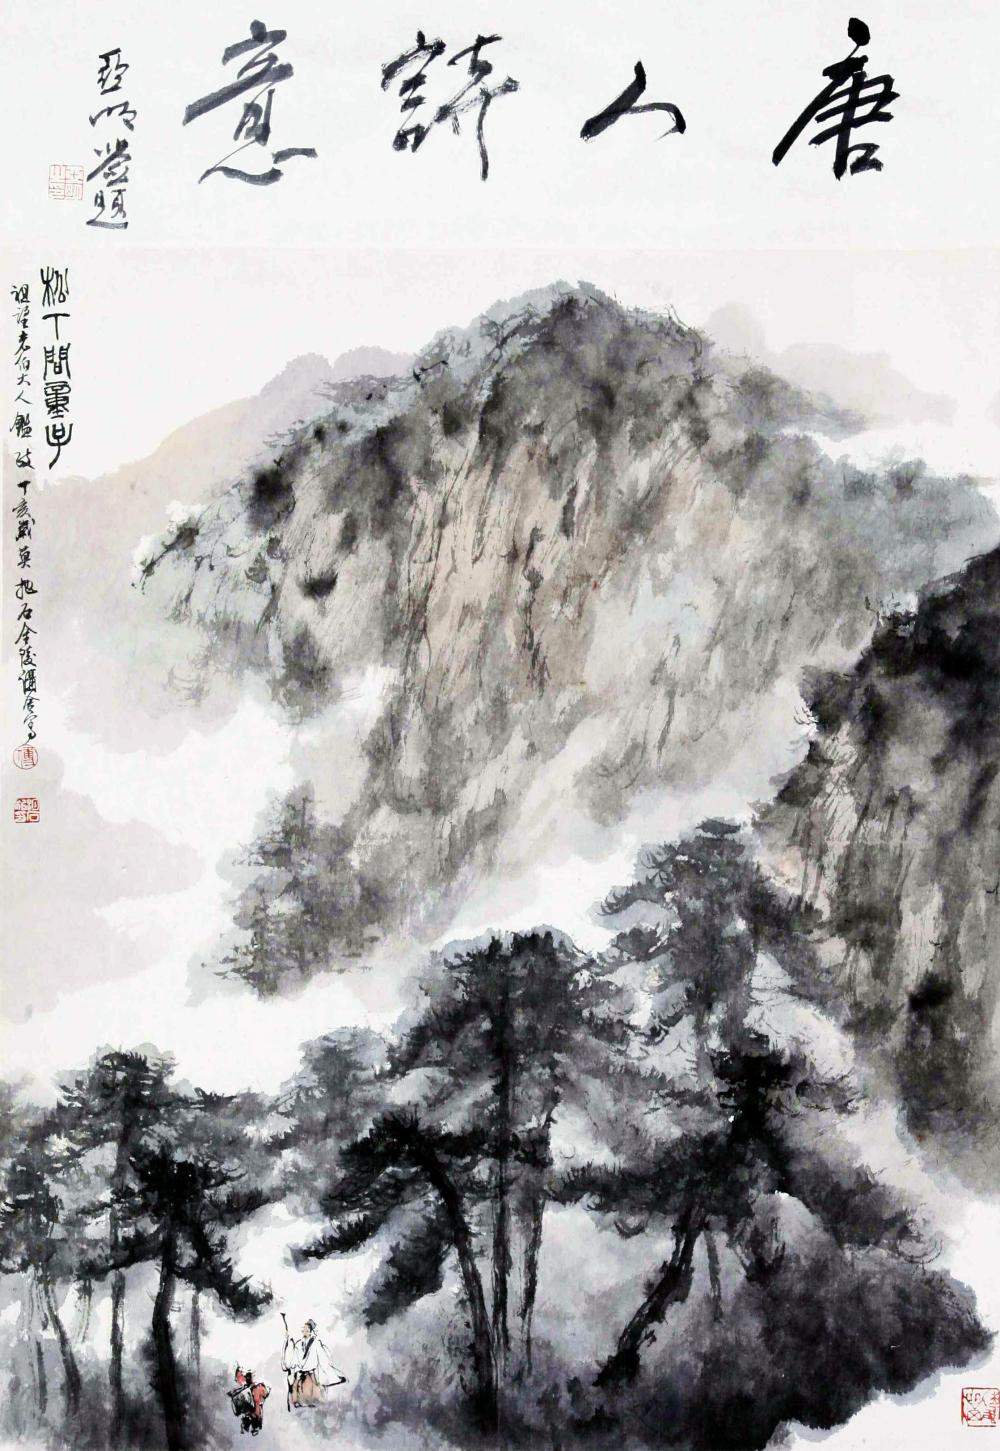 CHINESE PAINTING OF A MAN ASKING DIRECTION